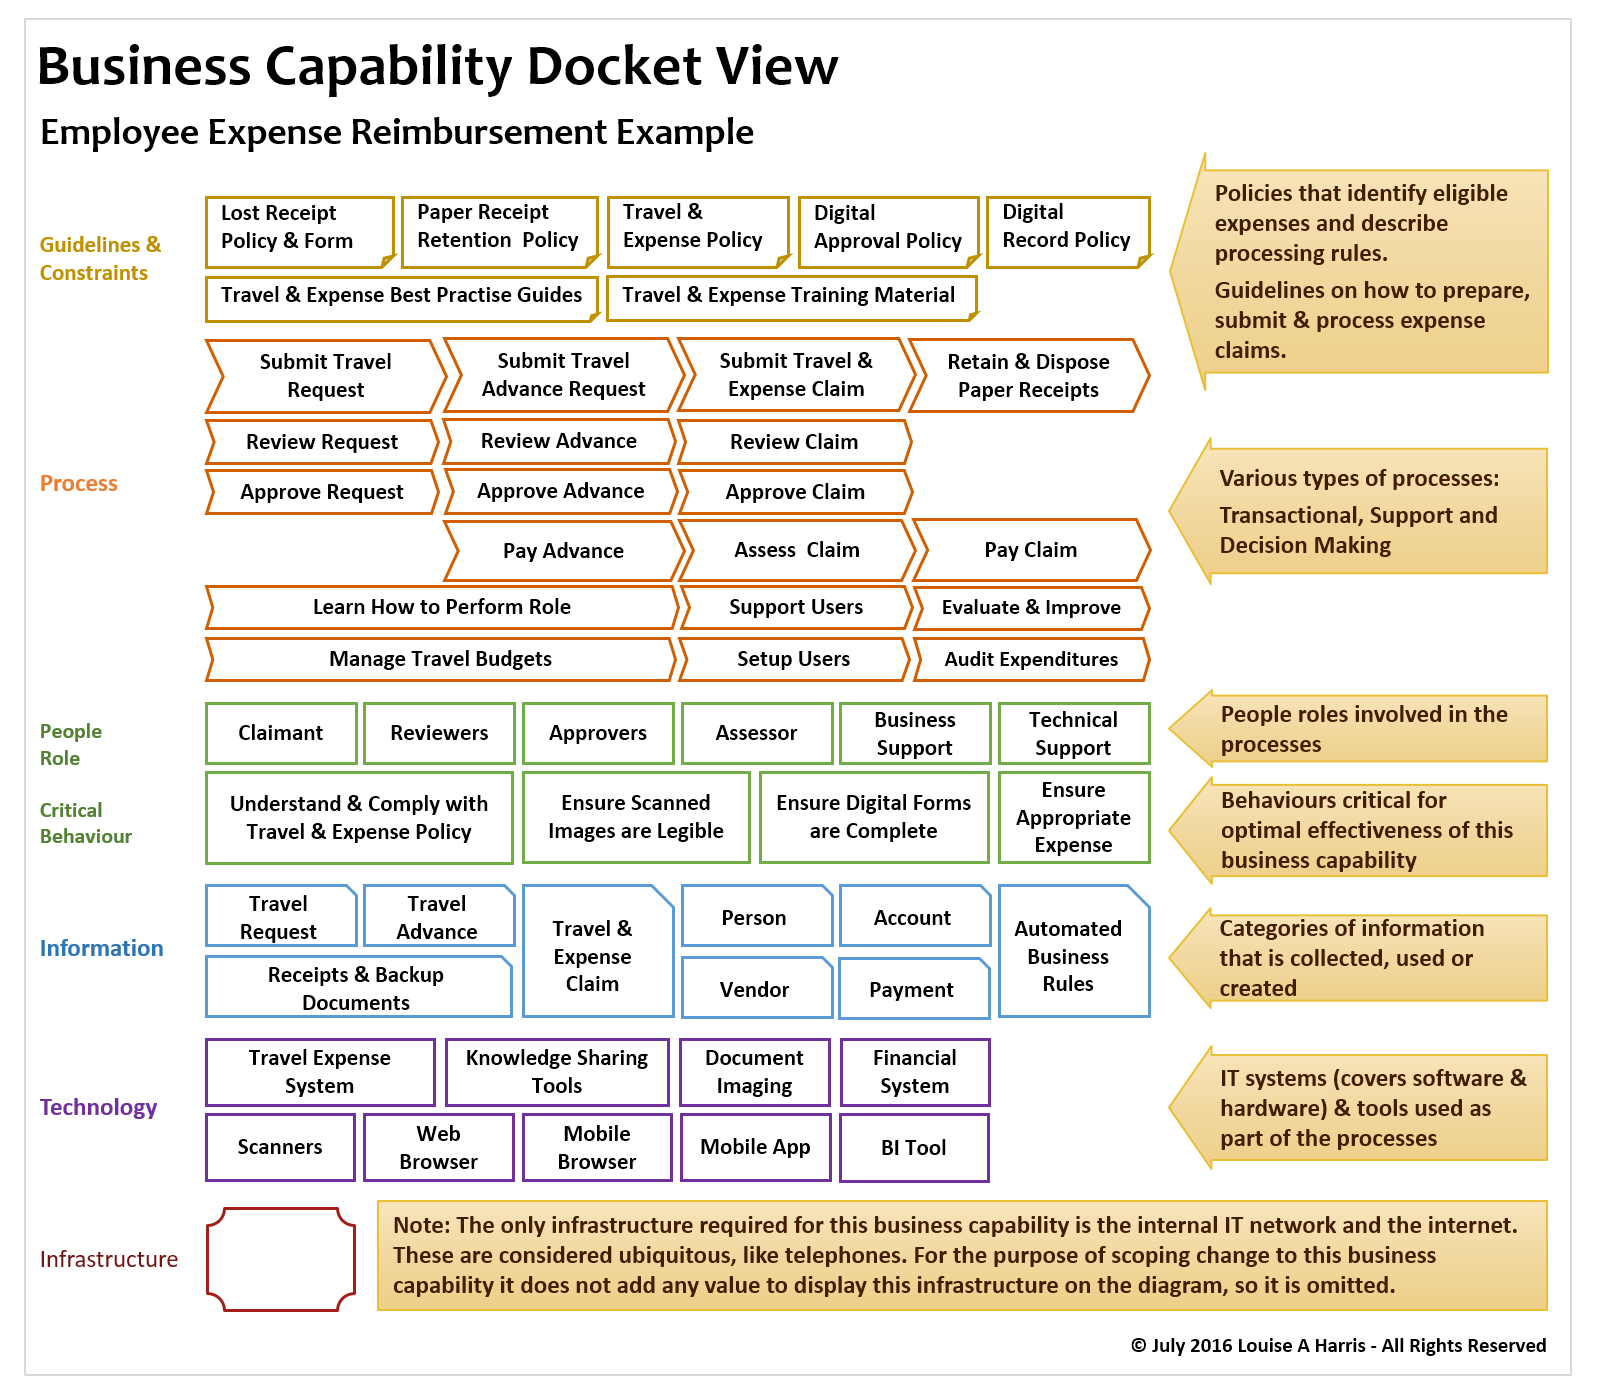 Business Capability Docket View